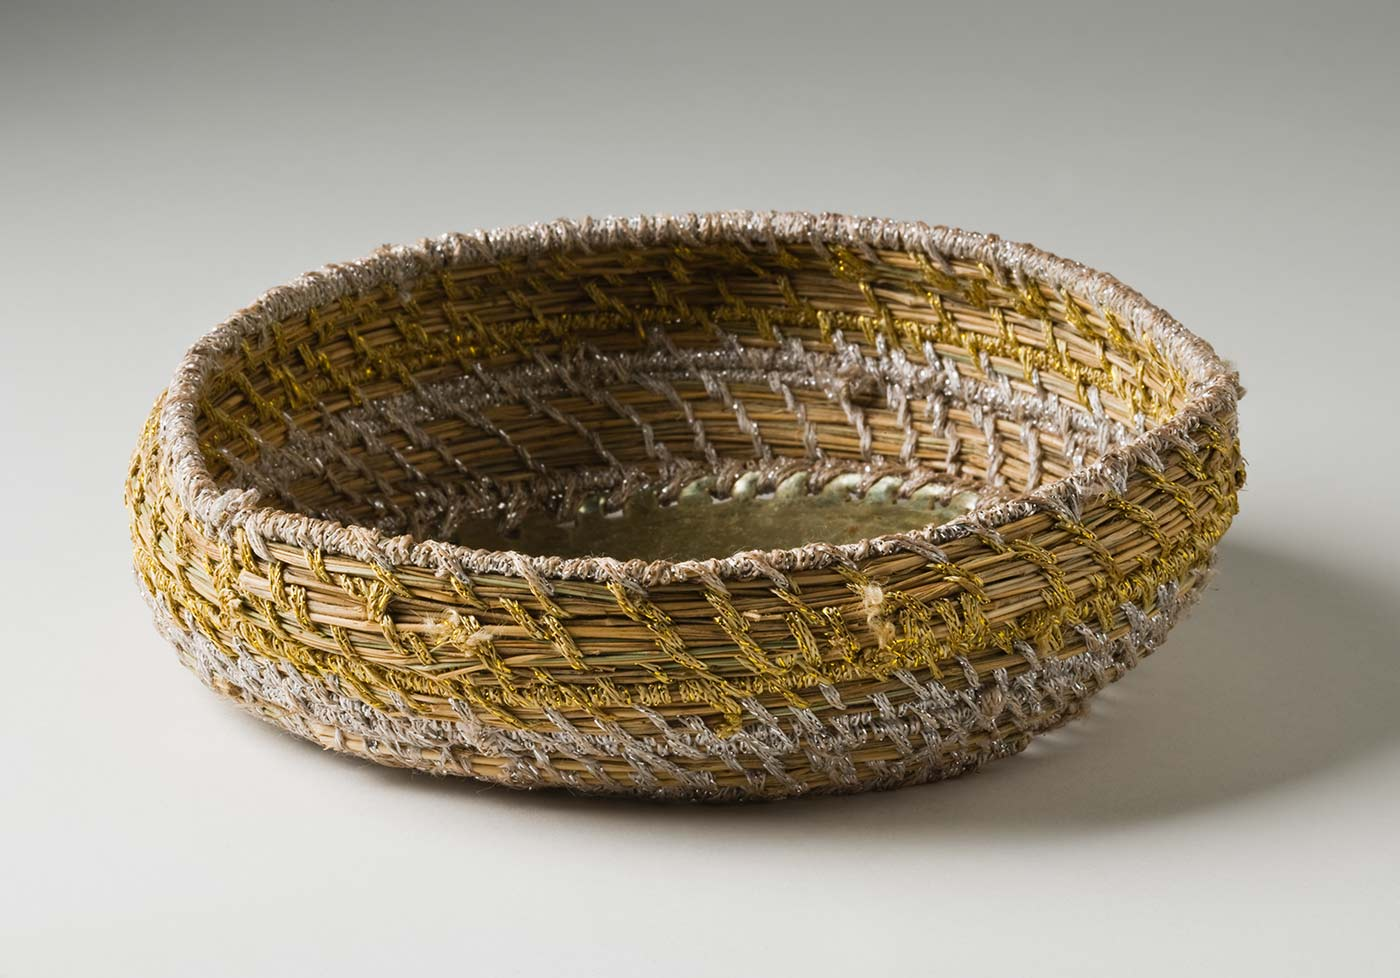 A shallow circular metallic yarn and plant fibre basket with metal base. The base is made of a blue 'Fray Bento / Steak and Kidney Pie' tin lid which has been attached to the yarn section with silver coloured metallic yarn through holes punched in the tin. The basket has silver and gold coloured metallic yarn spaced out so the plant fibre centre can be seen. - click to view larger image